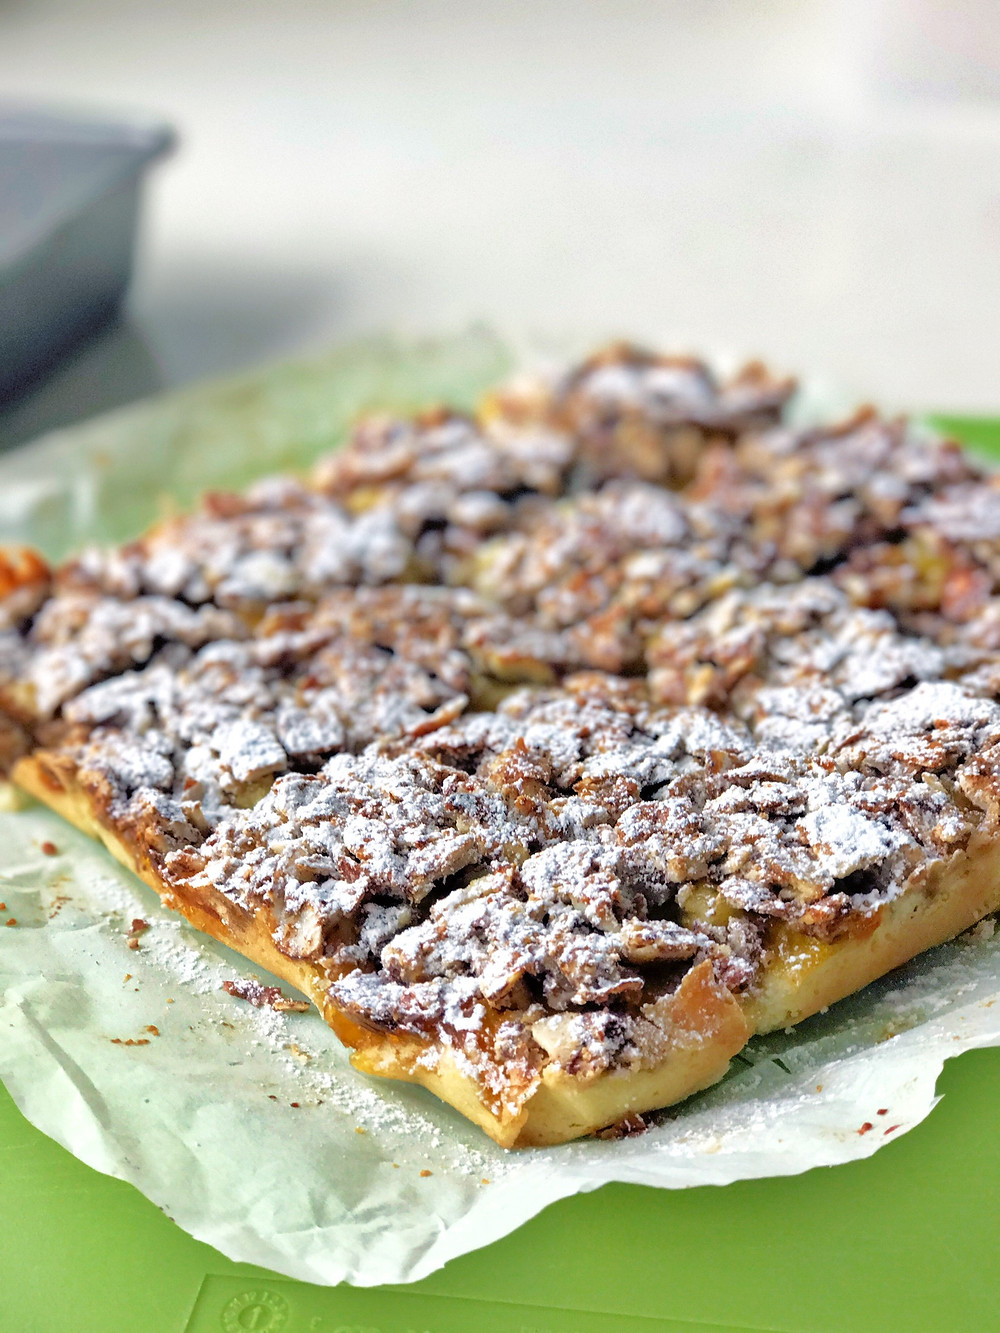 If you love almonds like I do, thisalmond marmalade square isdelicious for afternoon tea.Very easy to make. In fact I love all types of nuts so I bake a lot with nuts.